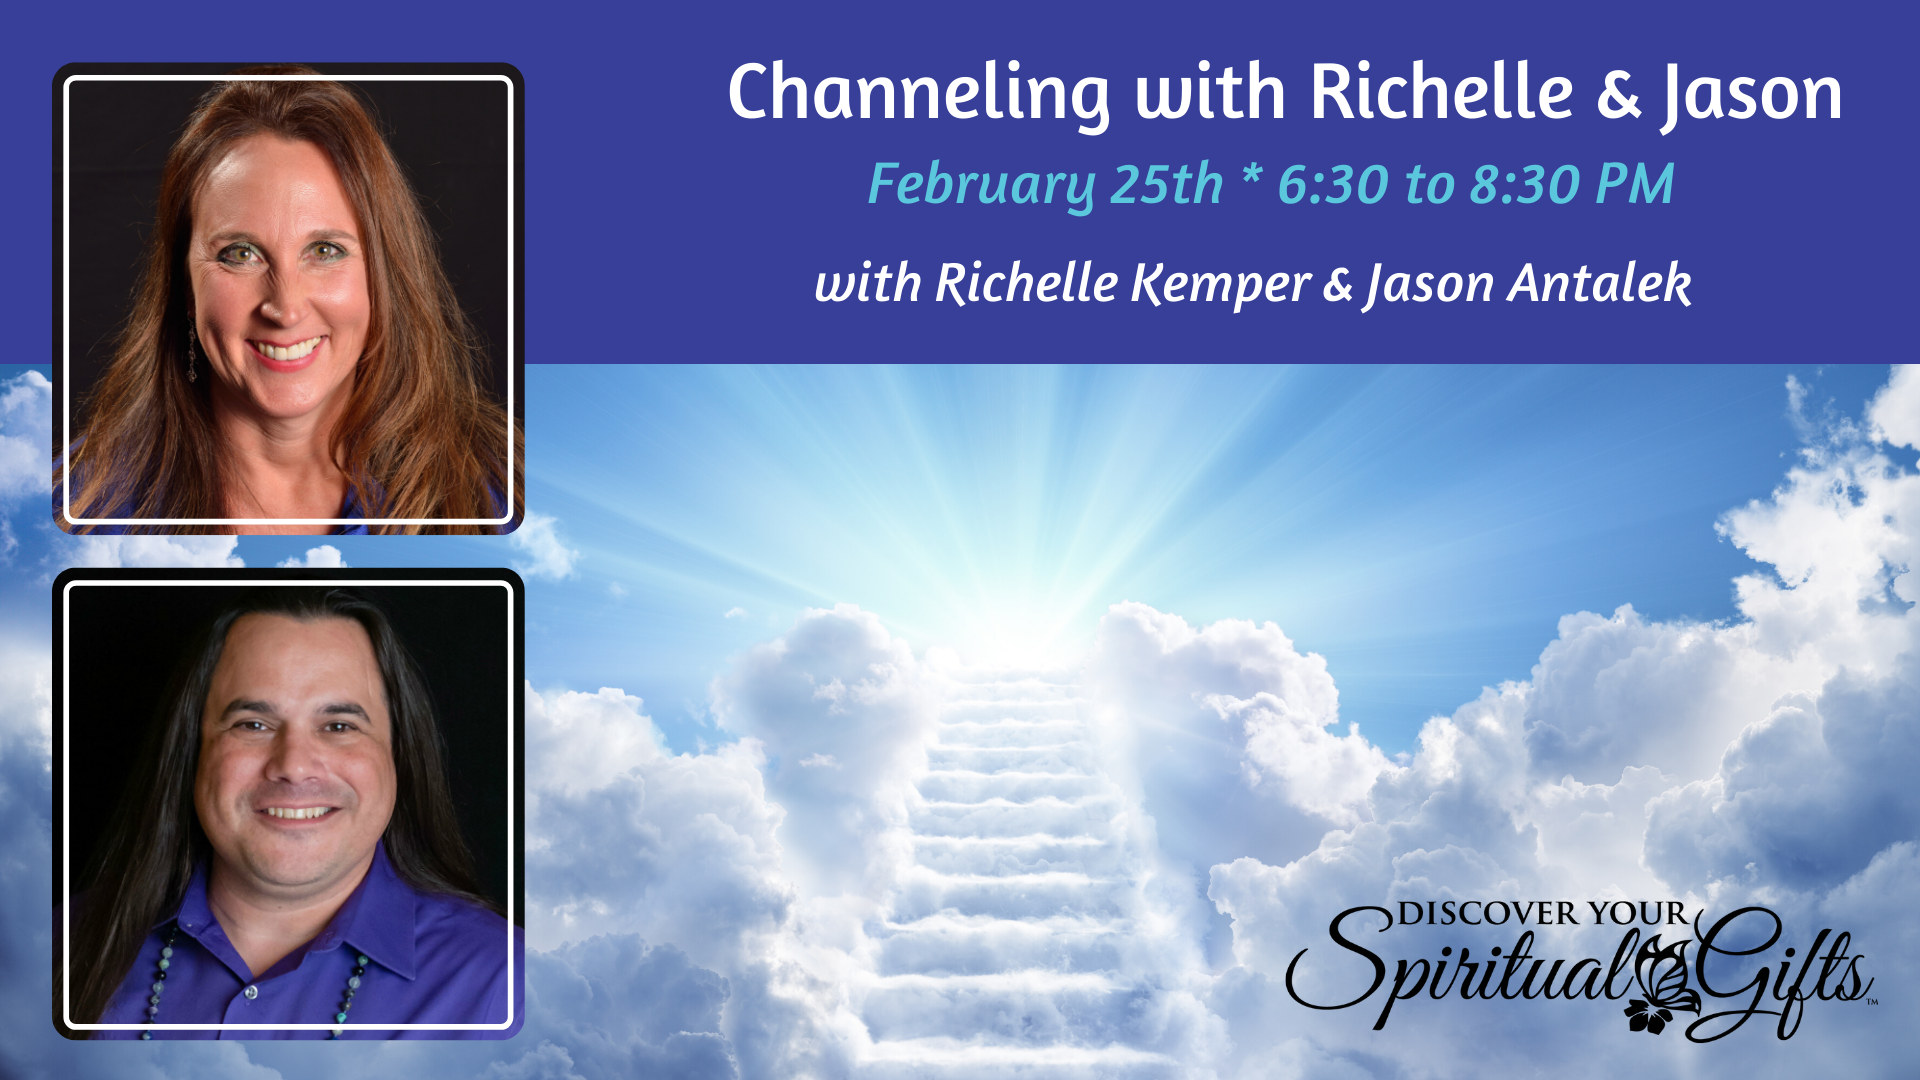 Channelling with Richelle & Jason